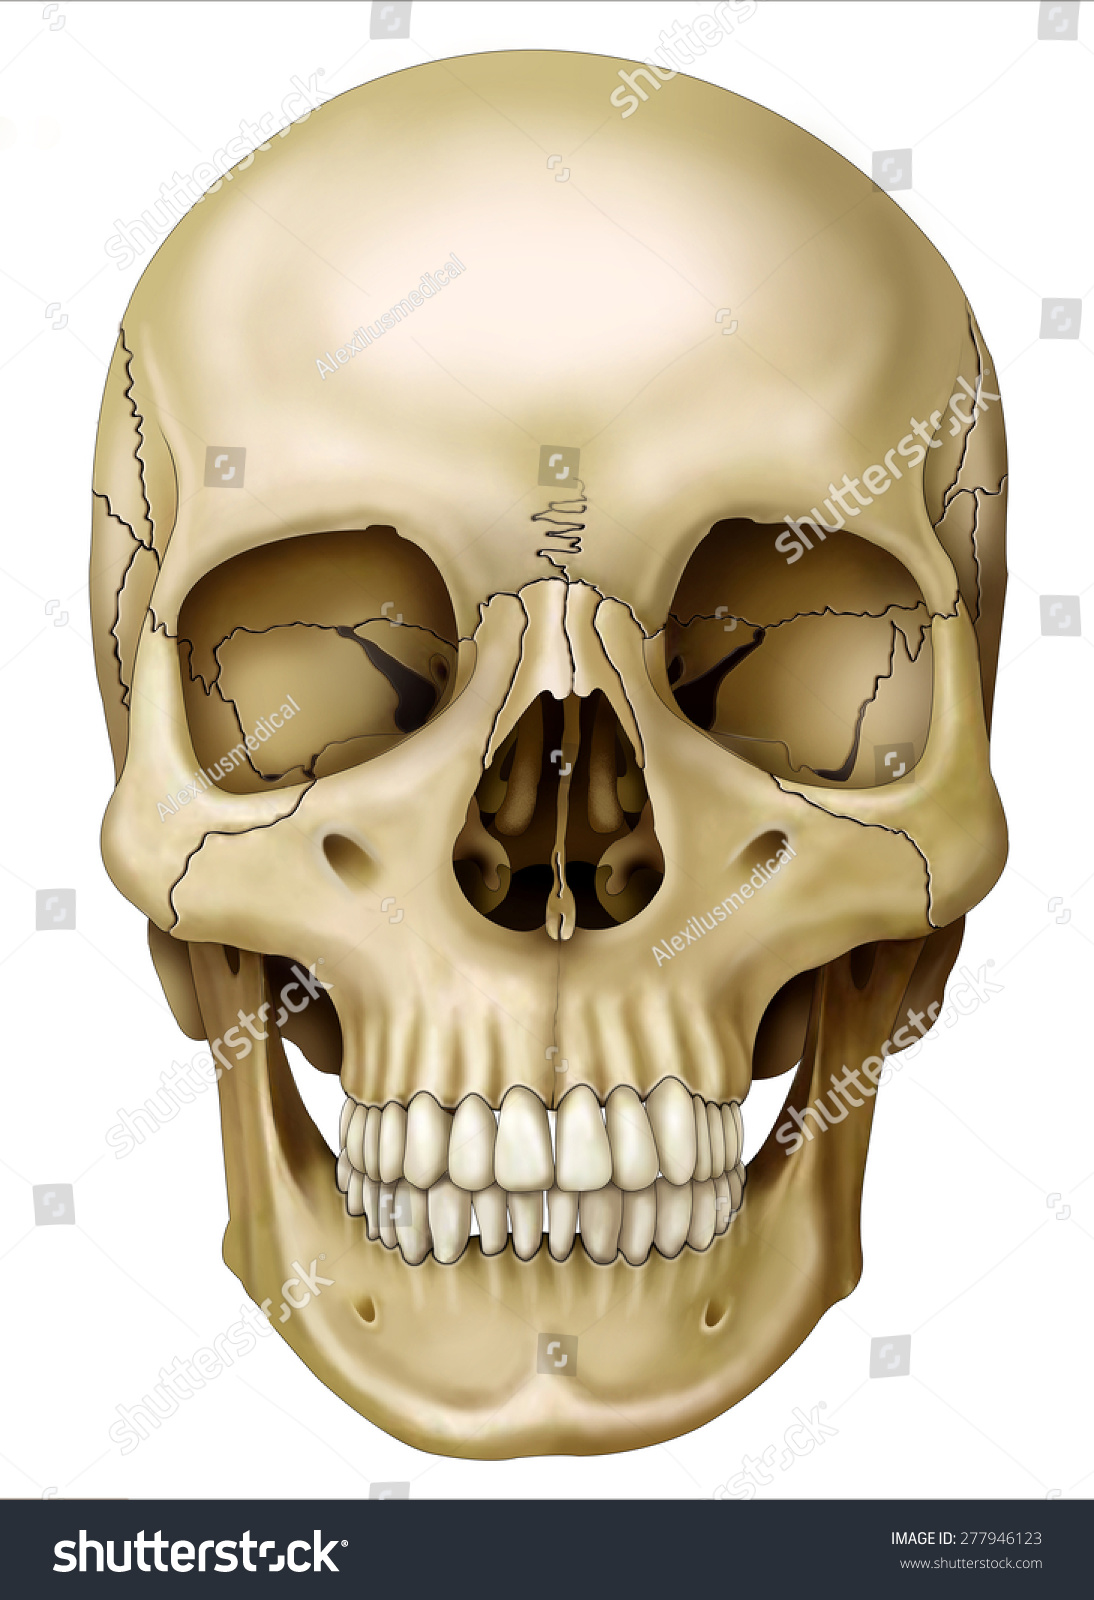 Front View Of Human Skull Stock Photo Shutterstock